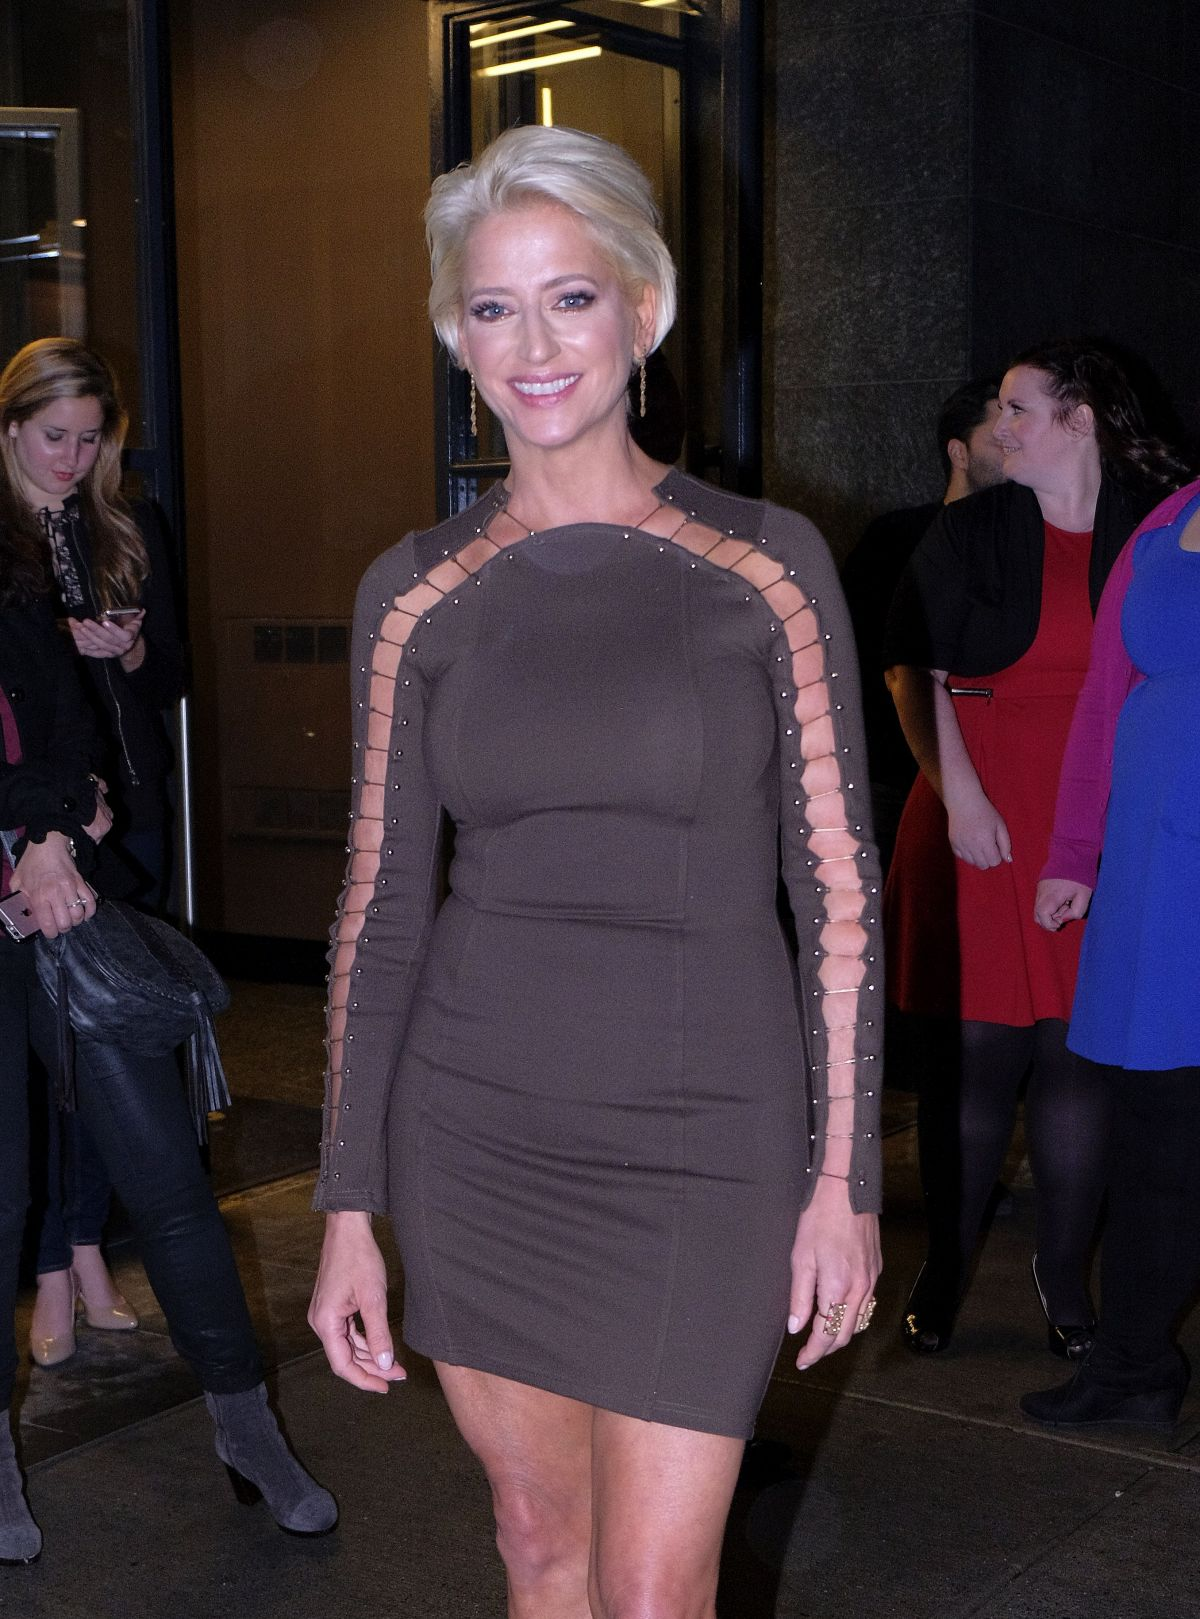 DORINDA MEDLEY at Watch What happens Live in New York 04/26/2017